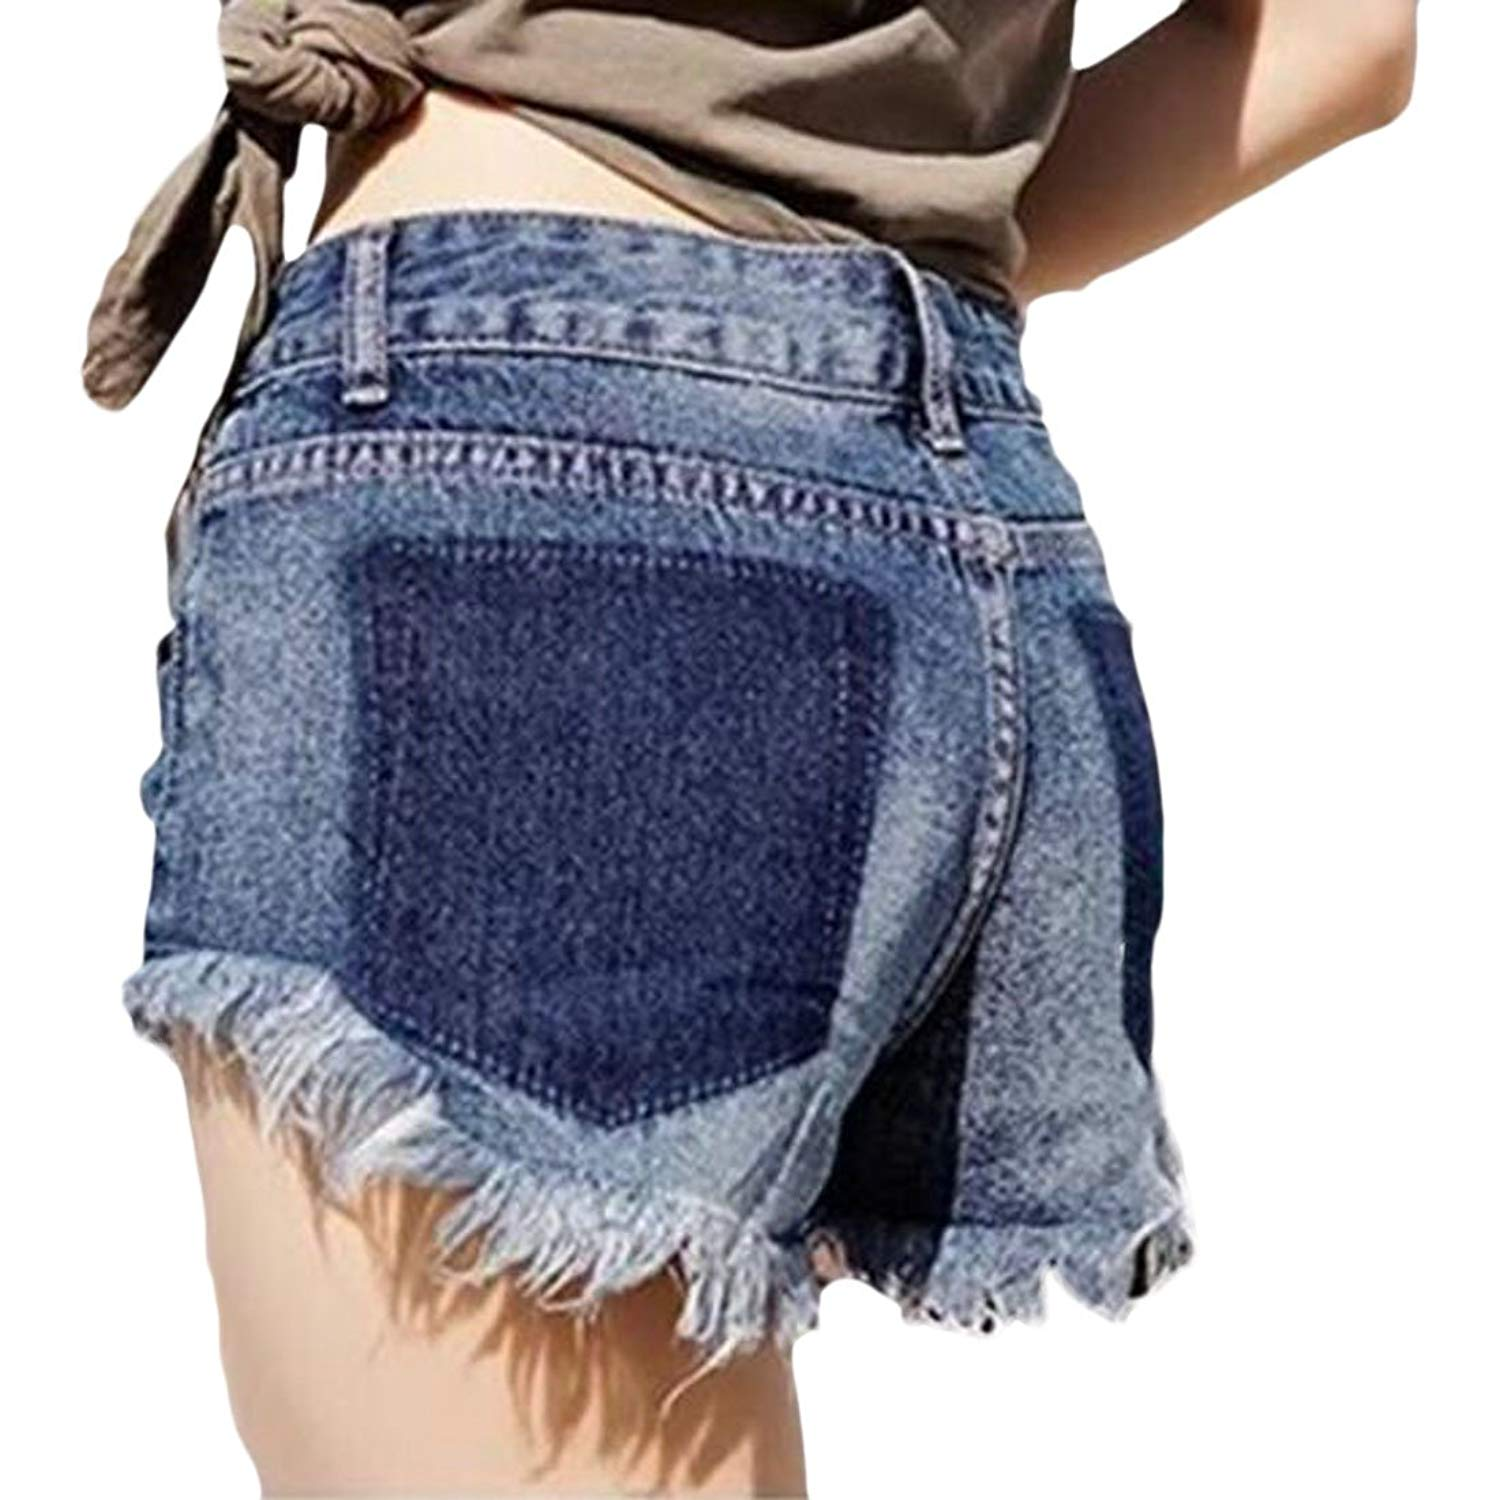 0285ac3a84 Get Quotations · Fensajomon Womens High Waist Cut Off Distressed Ripped  Distressed Sexy Casual Denim Shorts Jeans